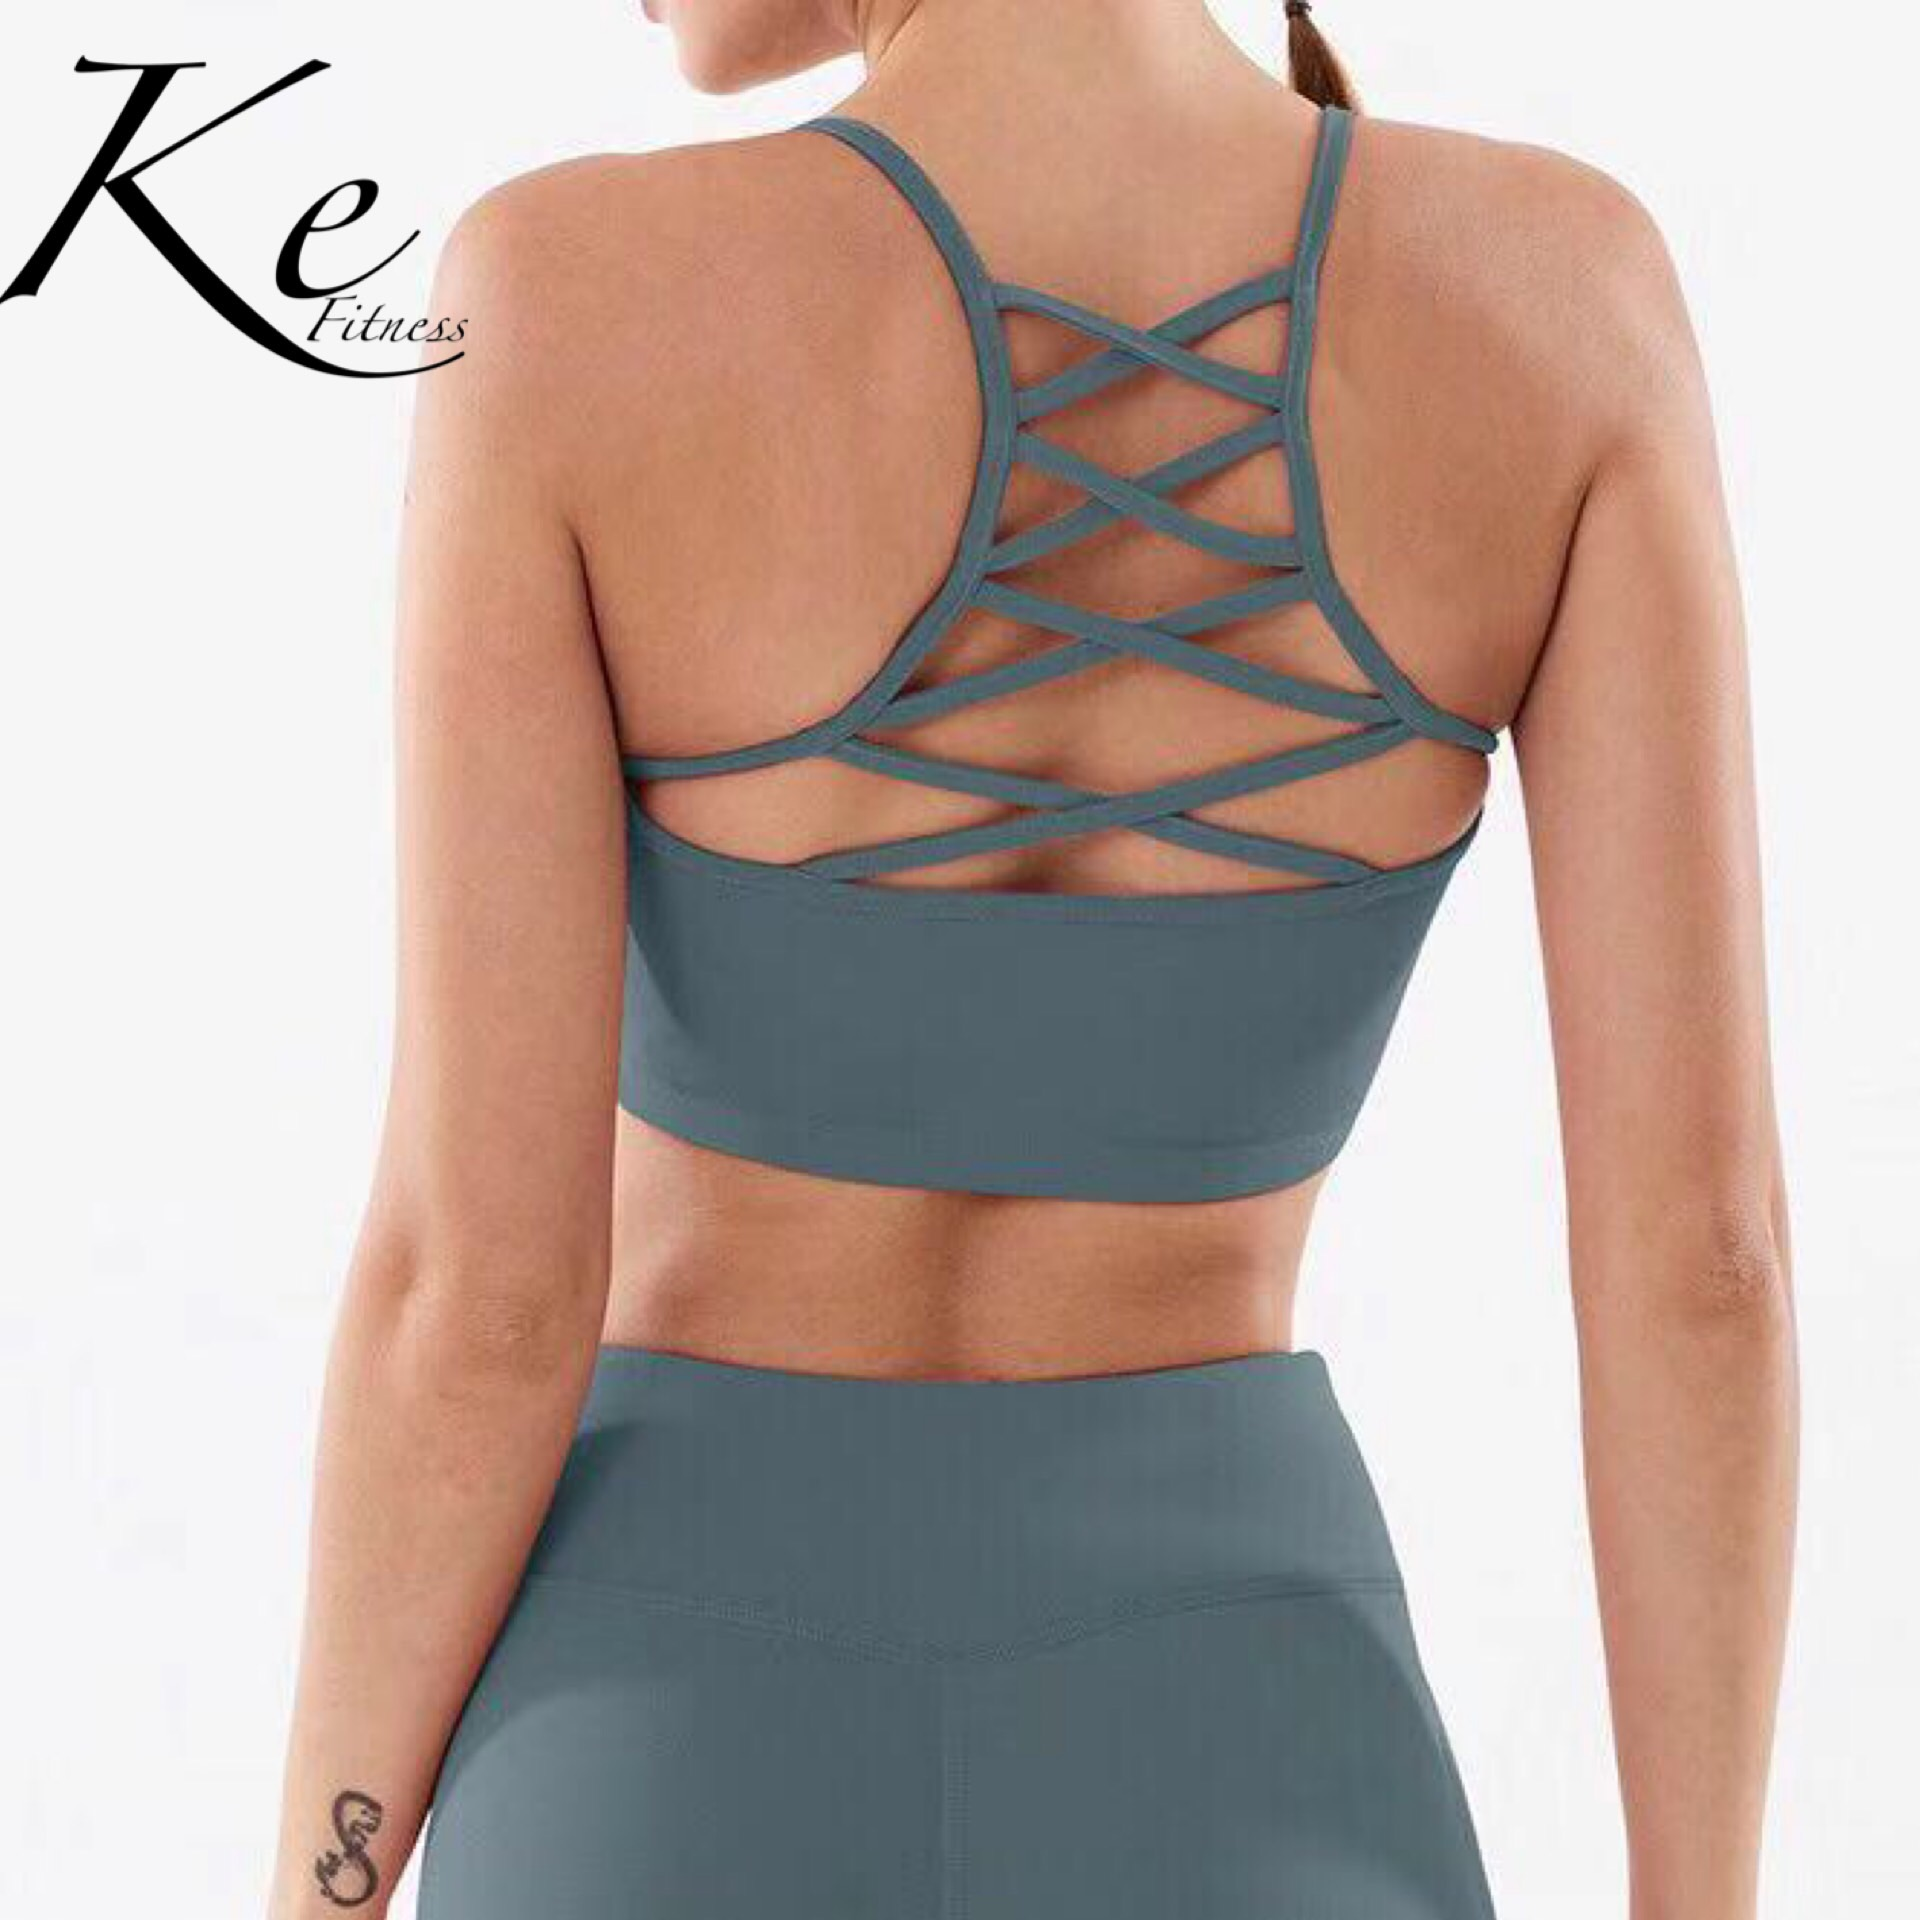 Suit Sports-Fitness-Bra Female Yoga Underwear Shoulder-Strap Backless Net Red Big KE